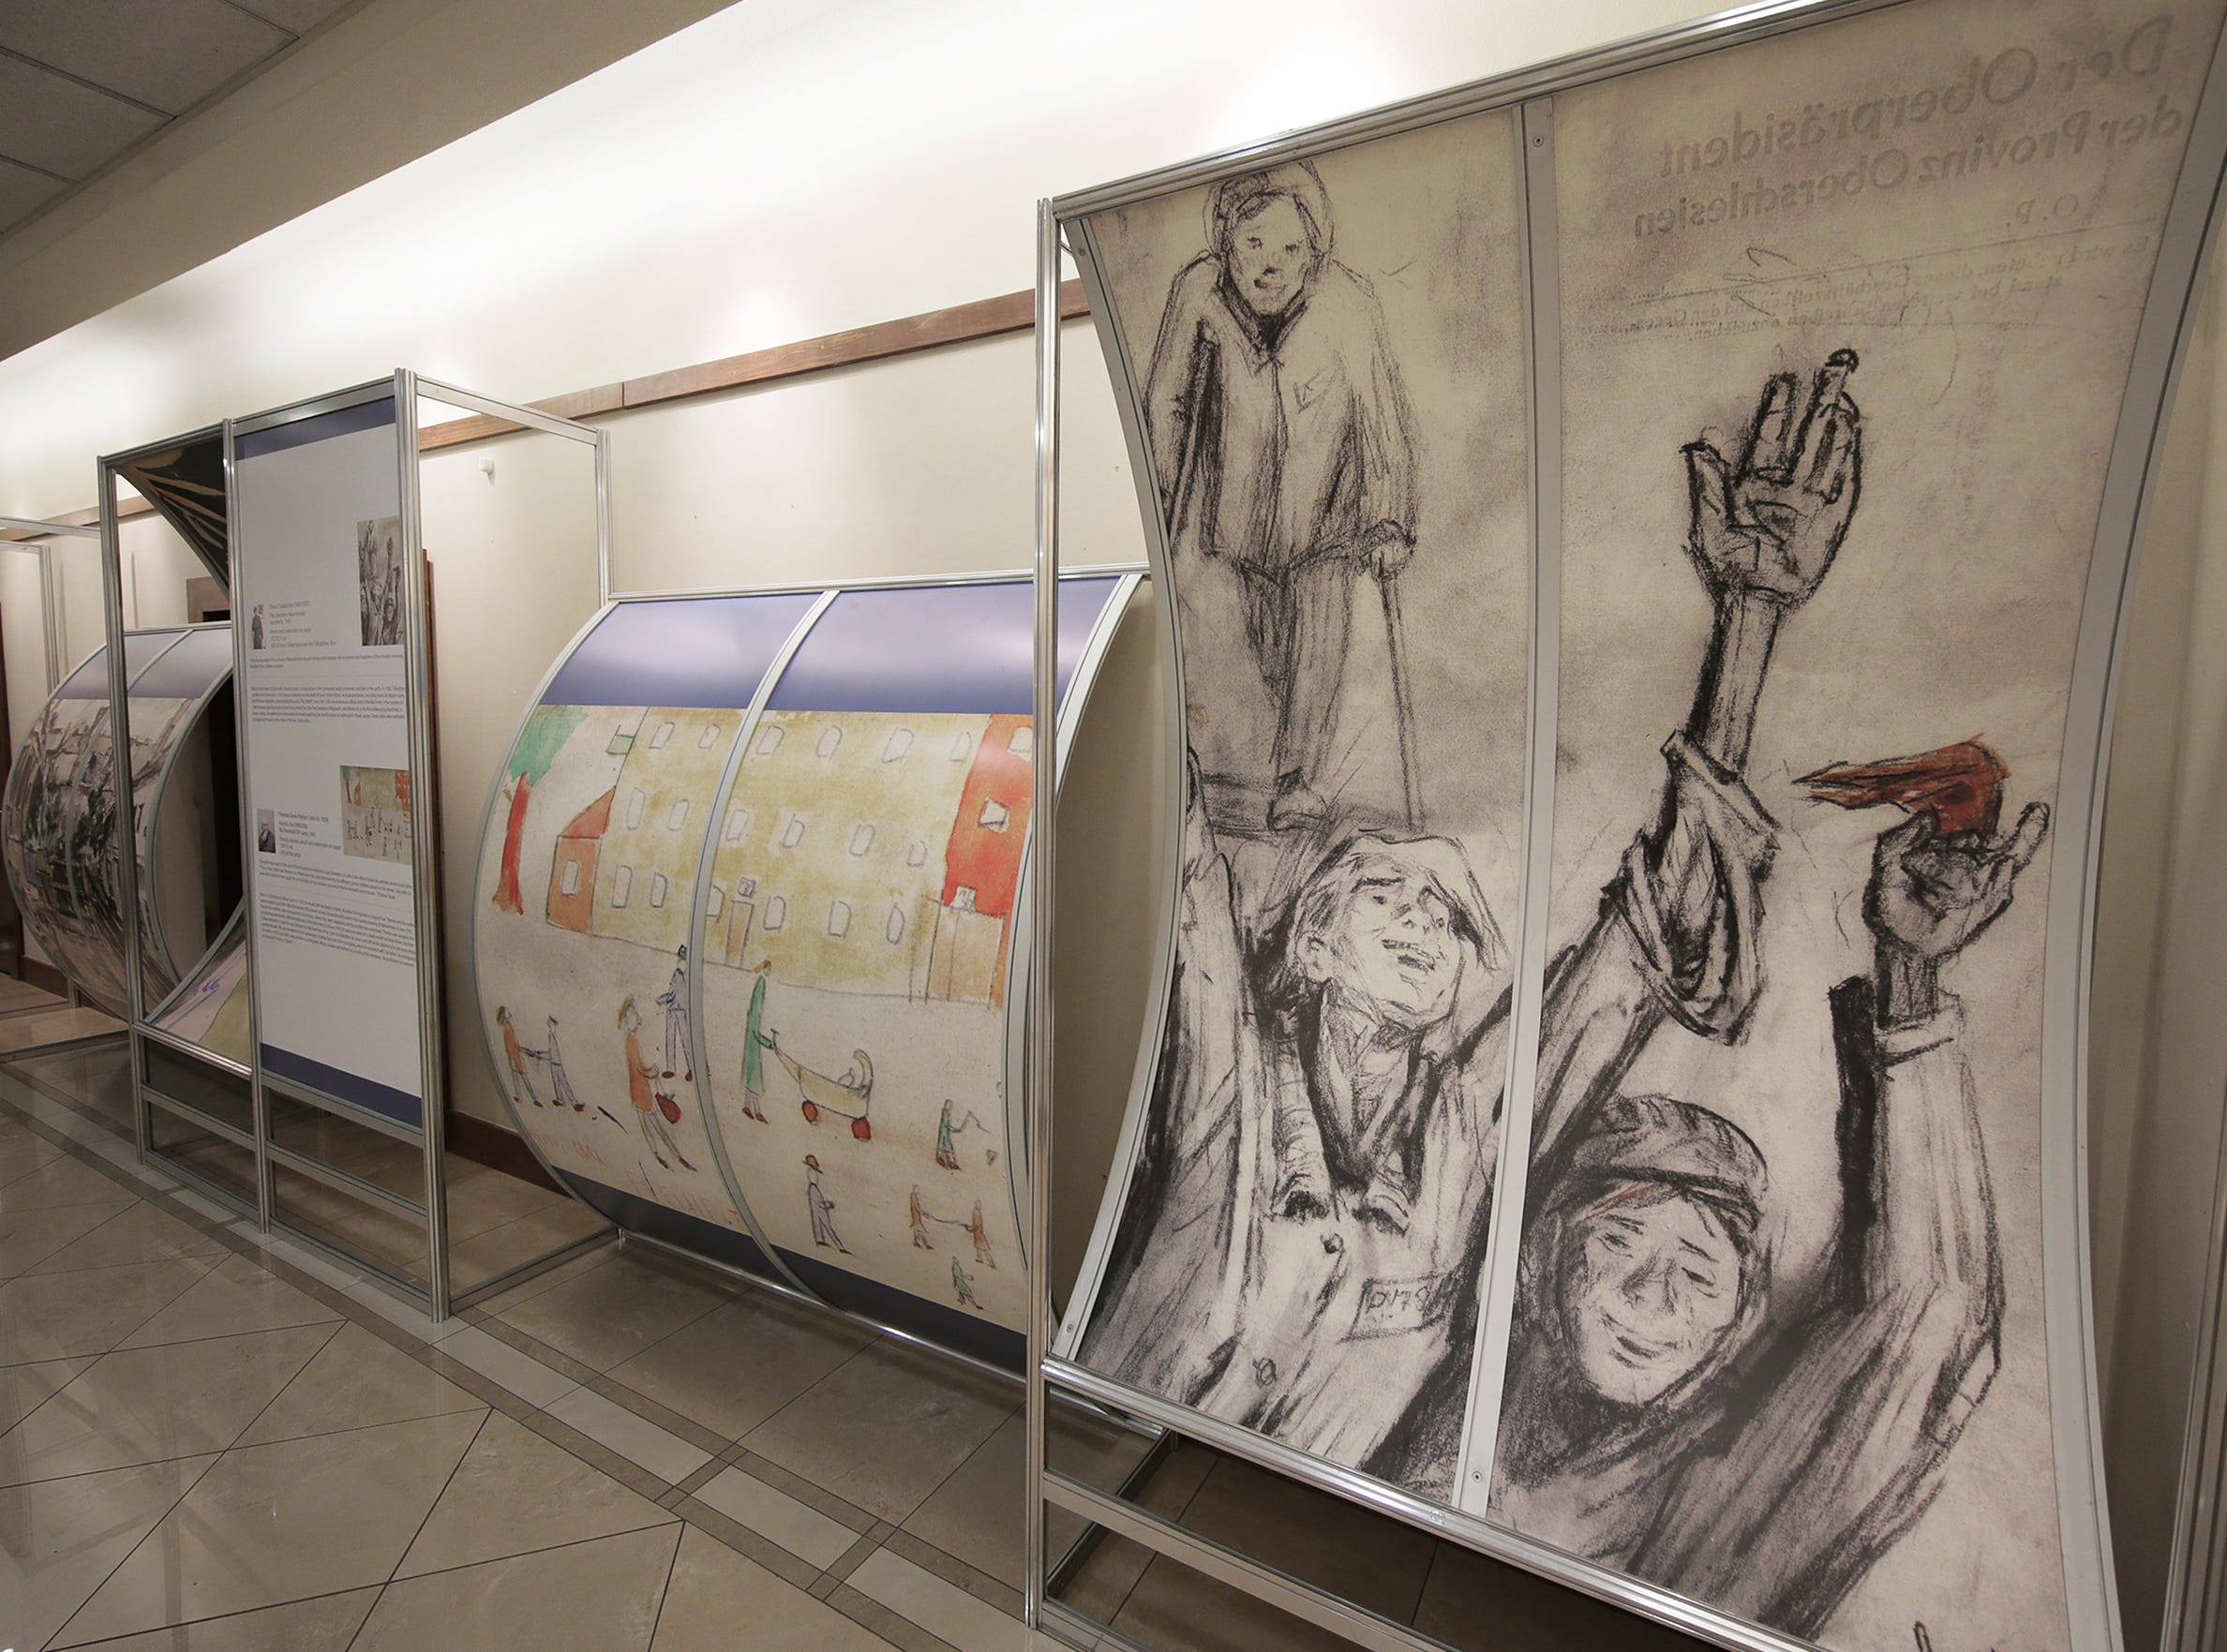 The El Paso Holocaust Museum and Study Center opened their exhibit 'The Anguish of Liberation as Reflected in Art' Friday. The exhibit features works created between 1945 and 1947 looking at how survivor artists reacted to liberation throught their art.